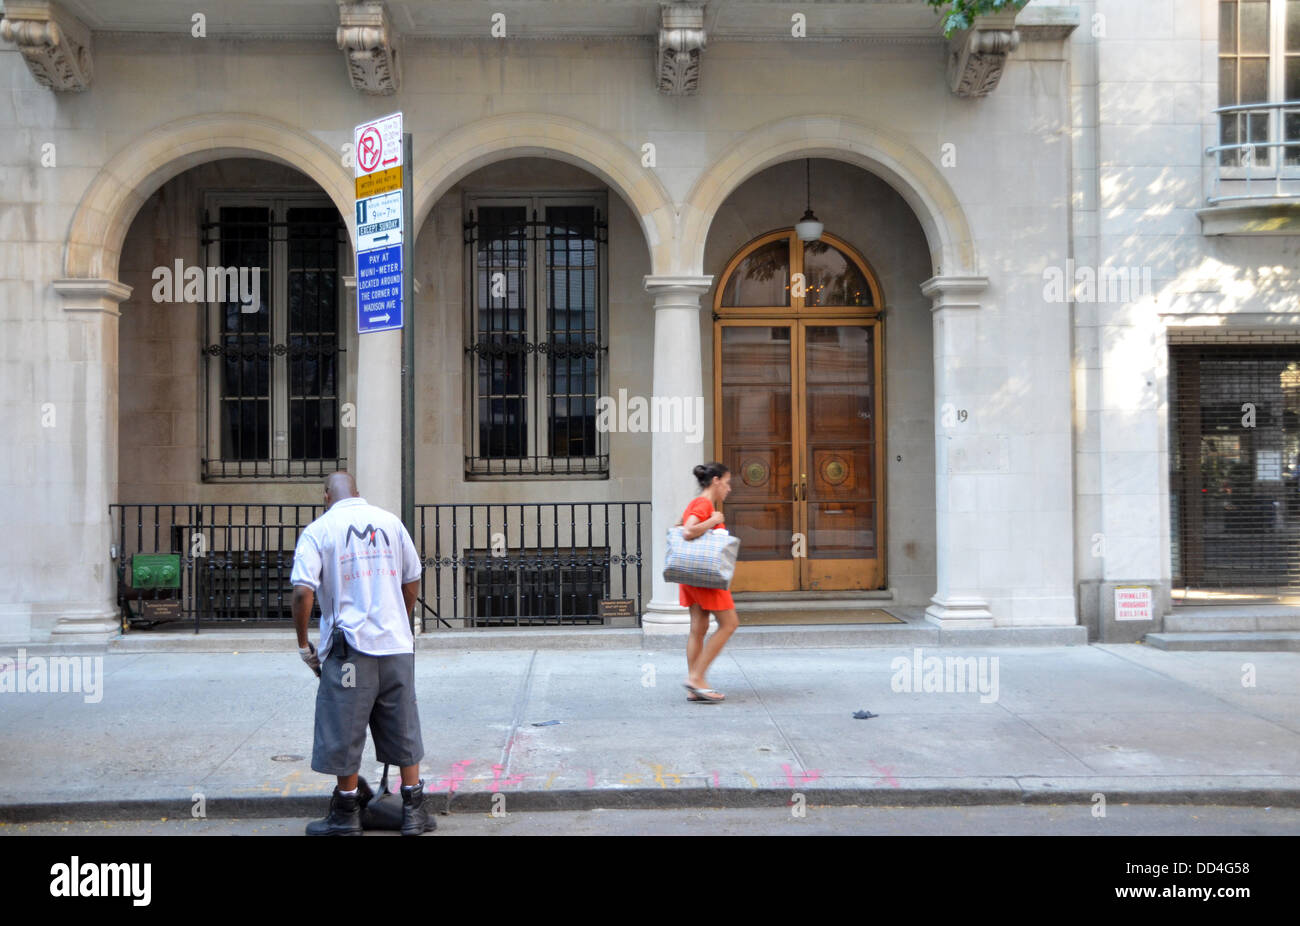 View of the M Knoedler & Co art dealership in New York City, USA, August 2013. When it closed in 2011, it was - Stock Image